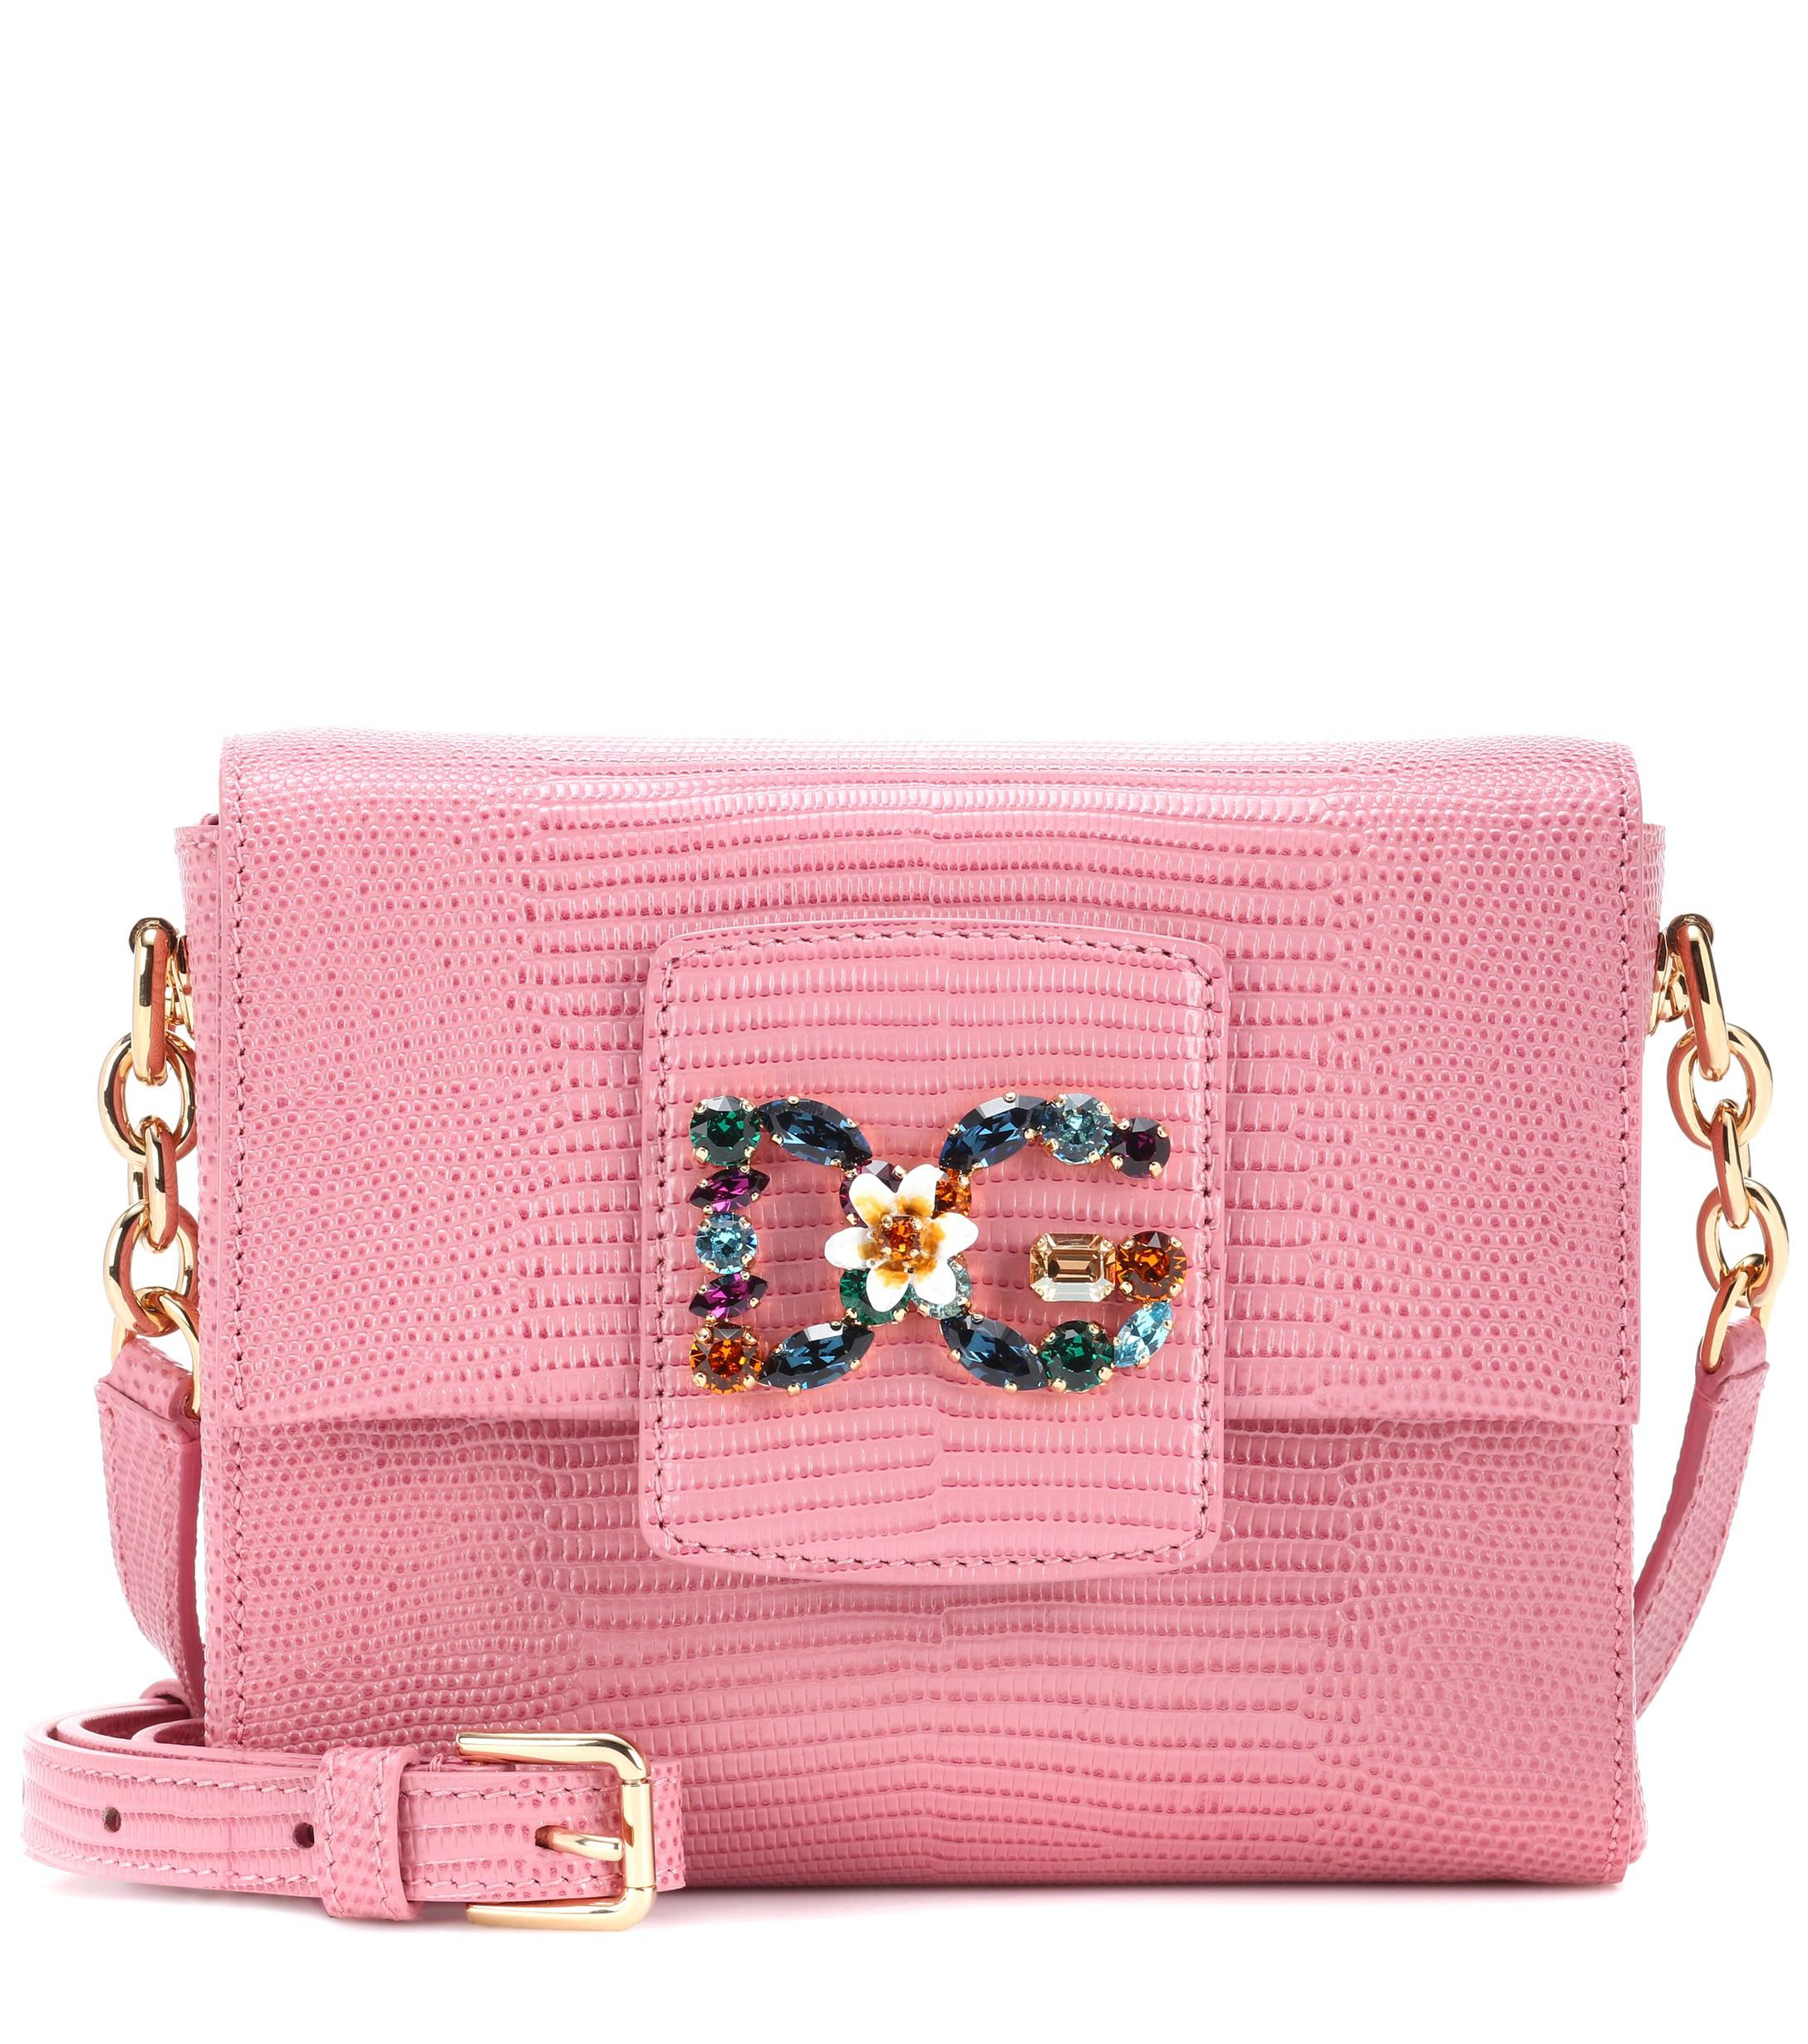 421a68ac1915 Lyst - Dolce   Gabbana Dg Millennials Mini Leather Shoulder Bag in Pink